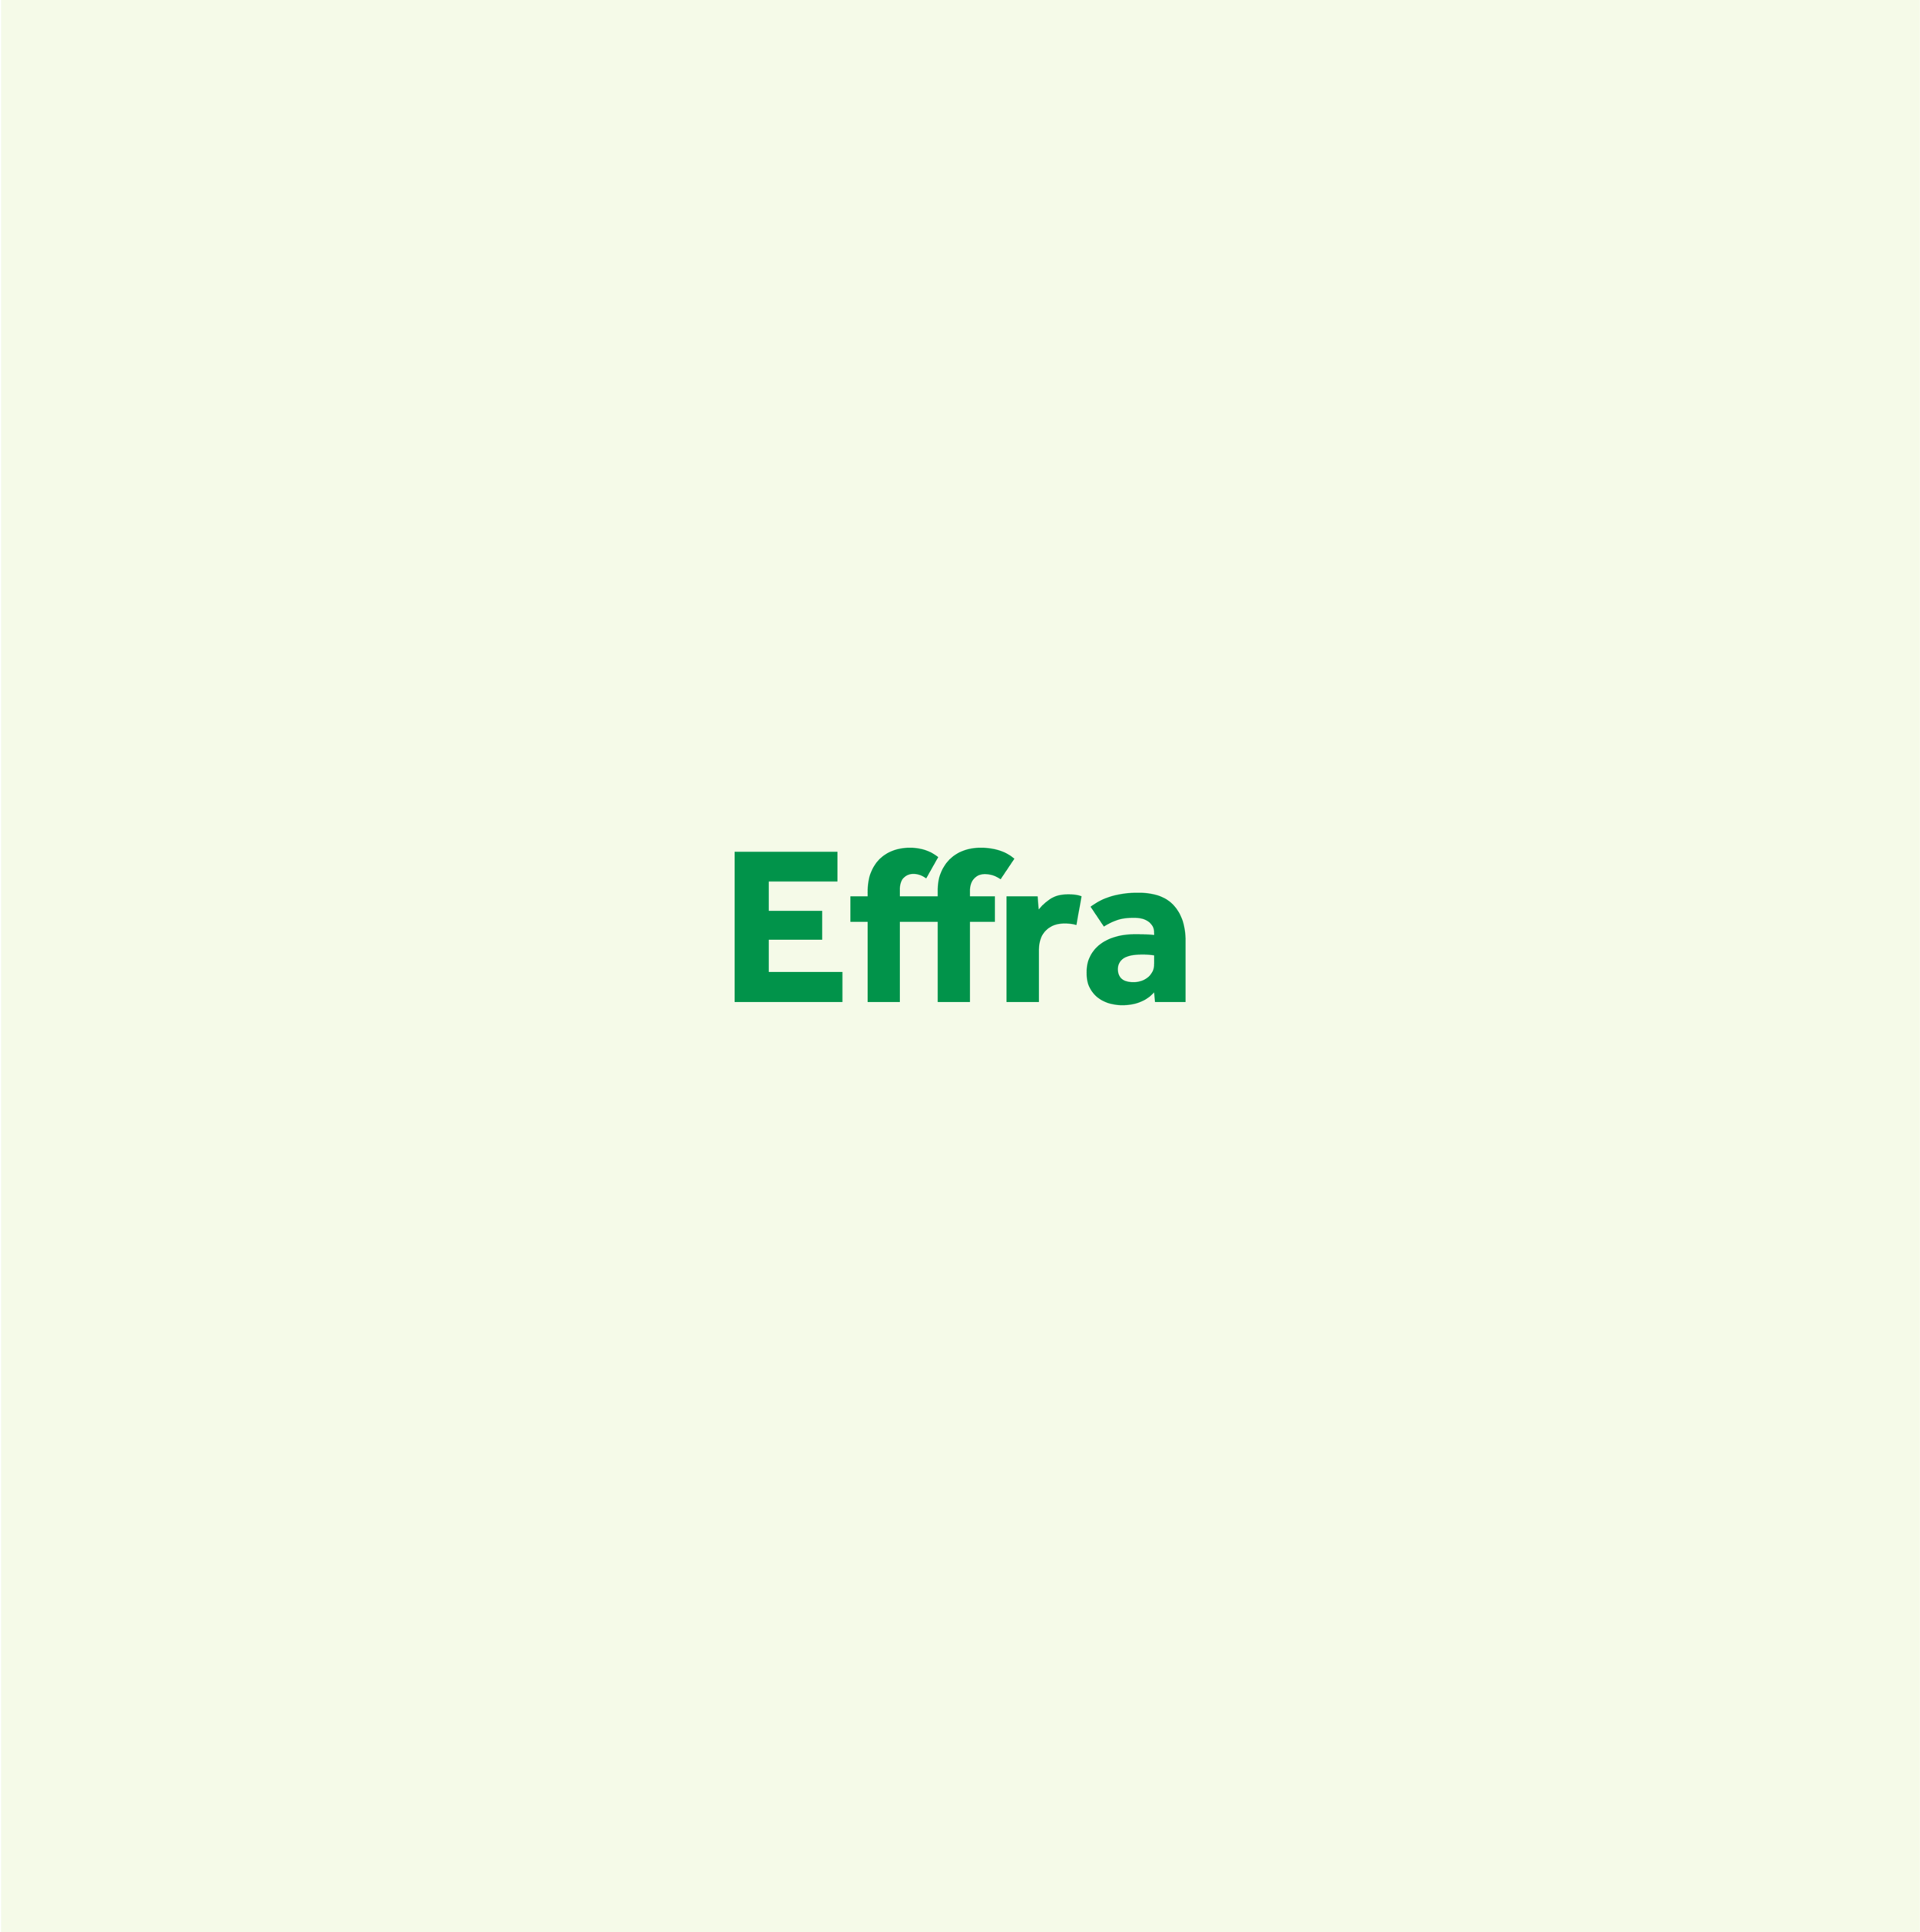 Effra - This is our primary typeface, which should be used on all digital & printed brand materials, advertisements, and websites/landing pages.